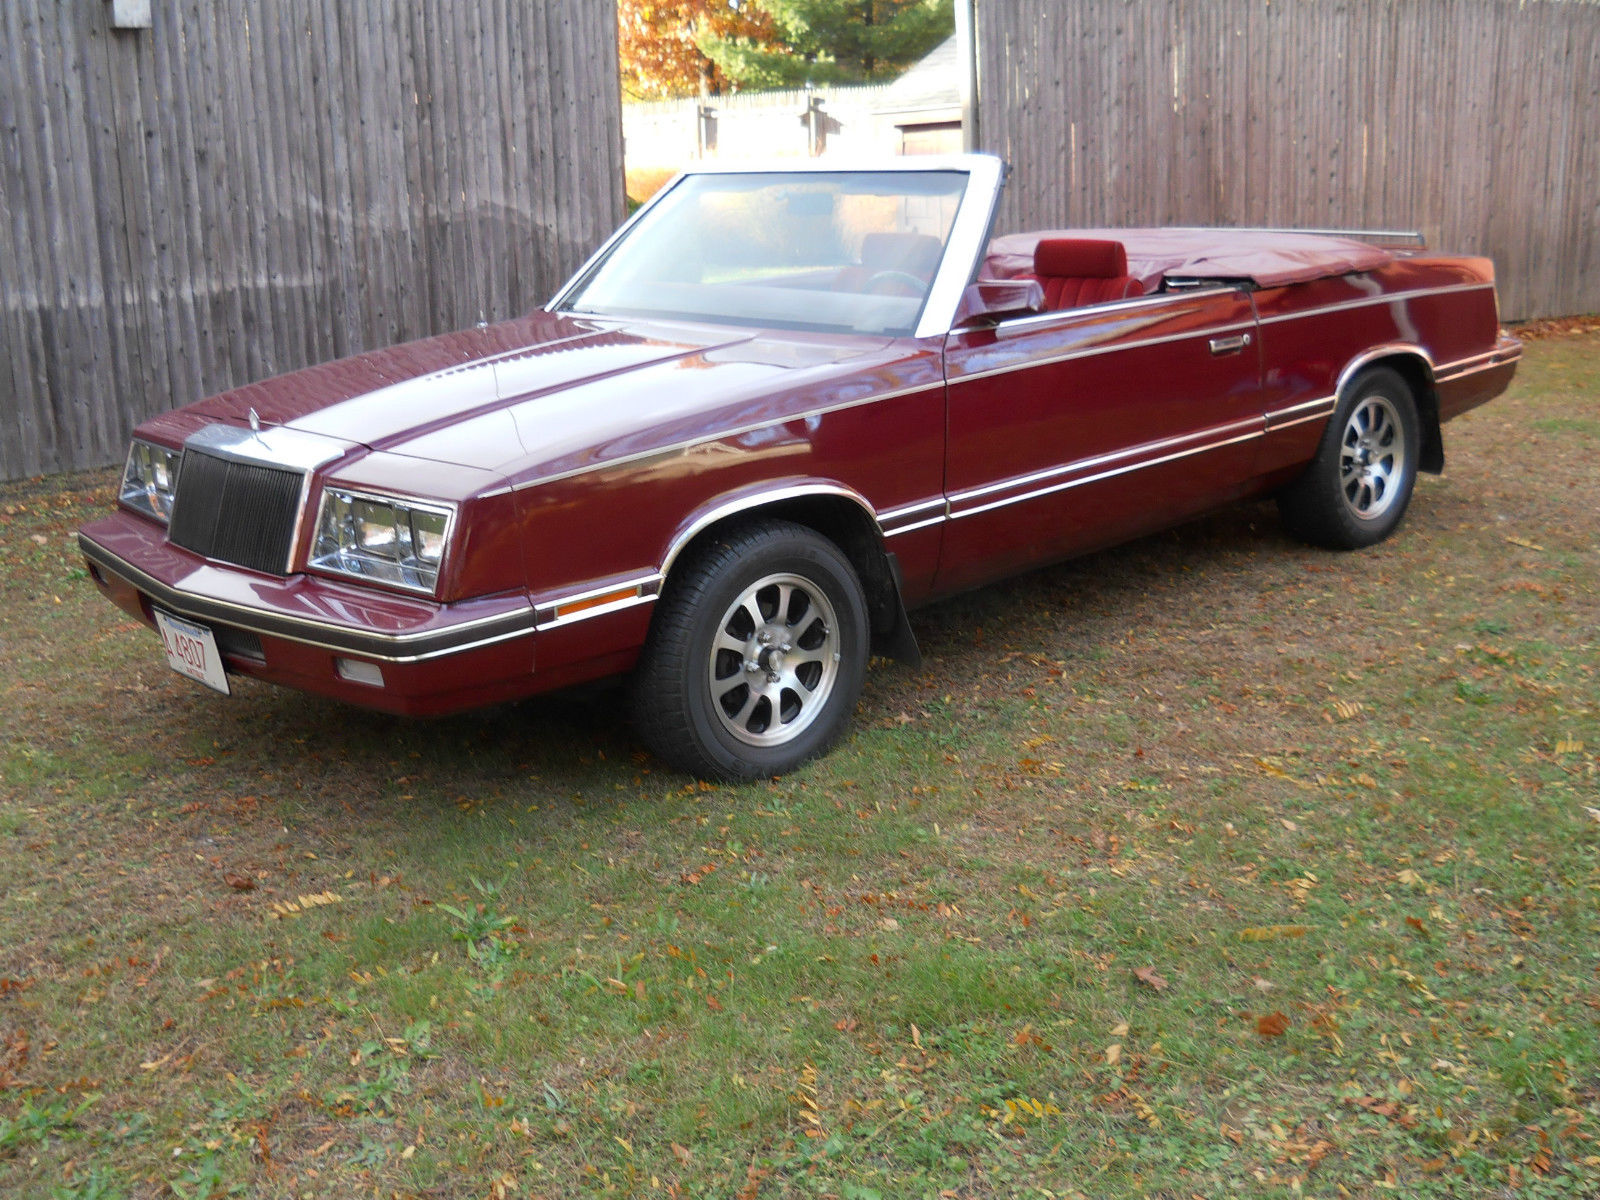 1982 Chrysler LeBaron Convertible for sale